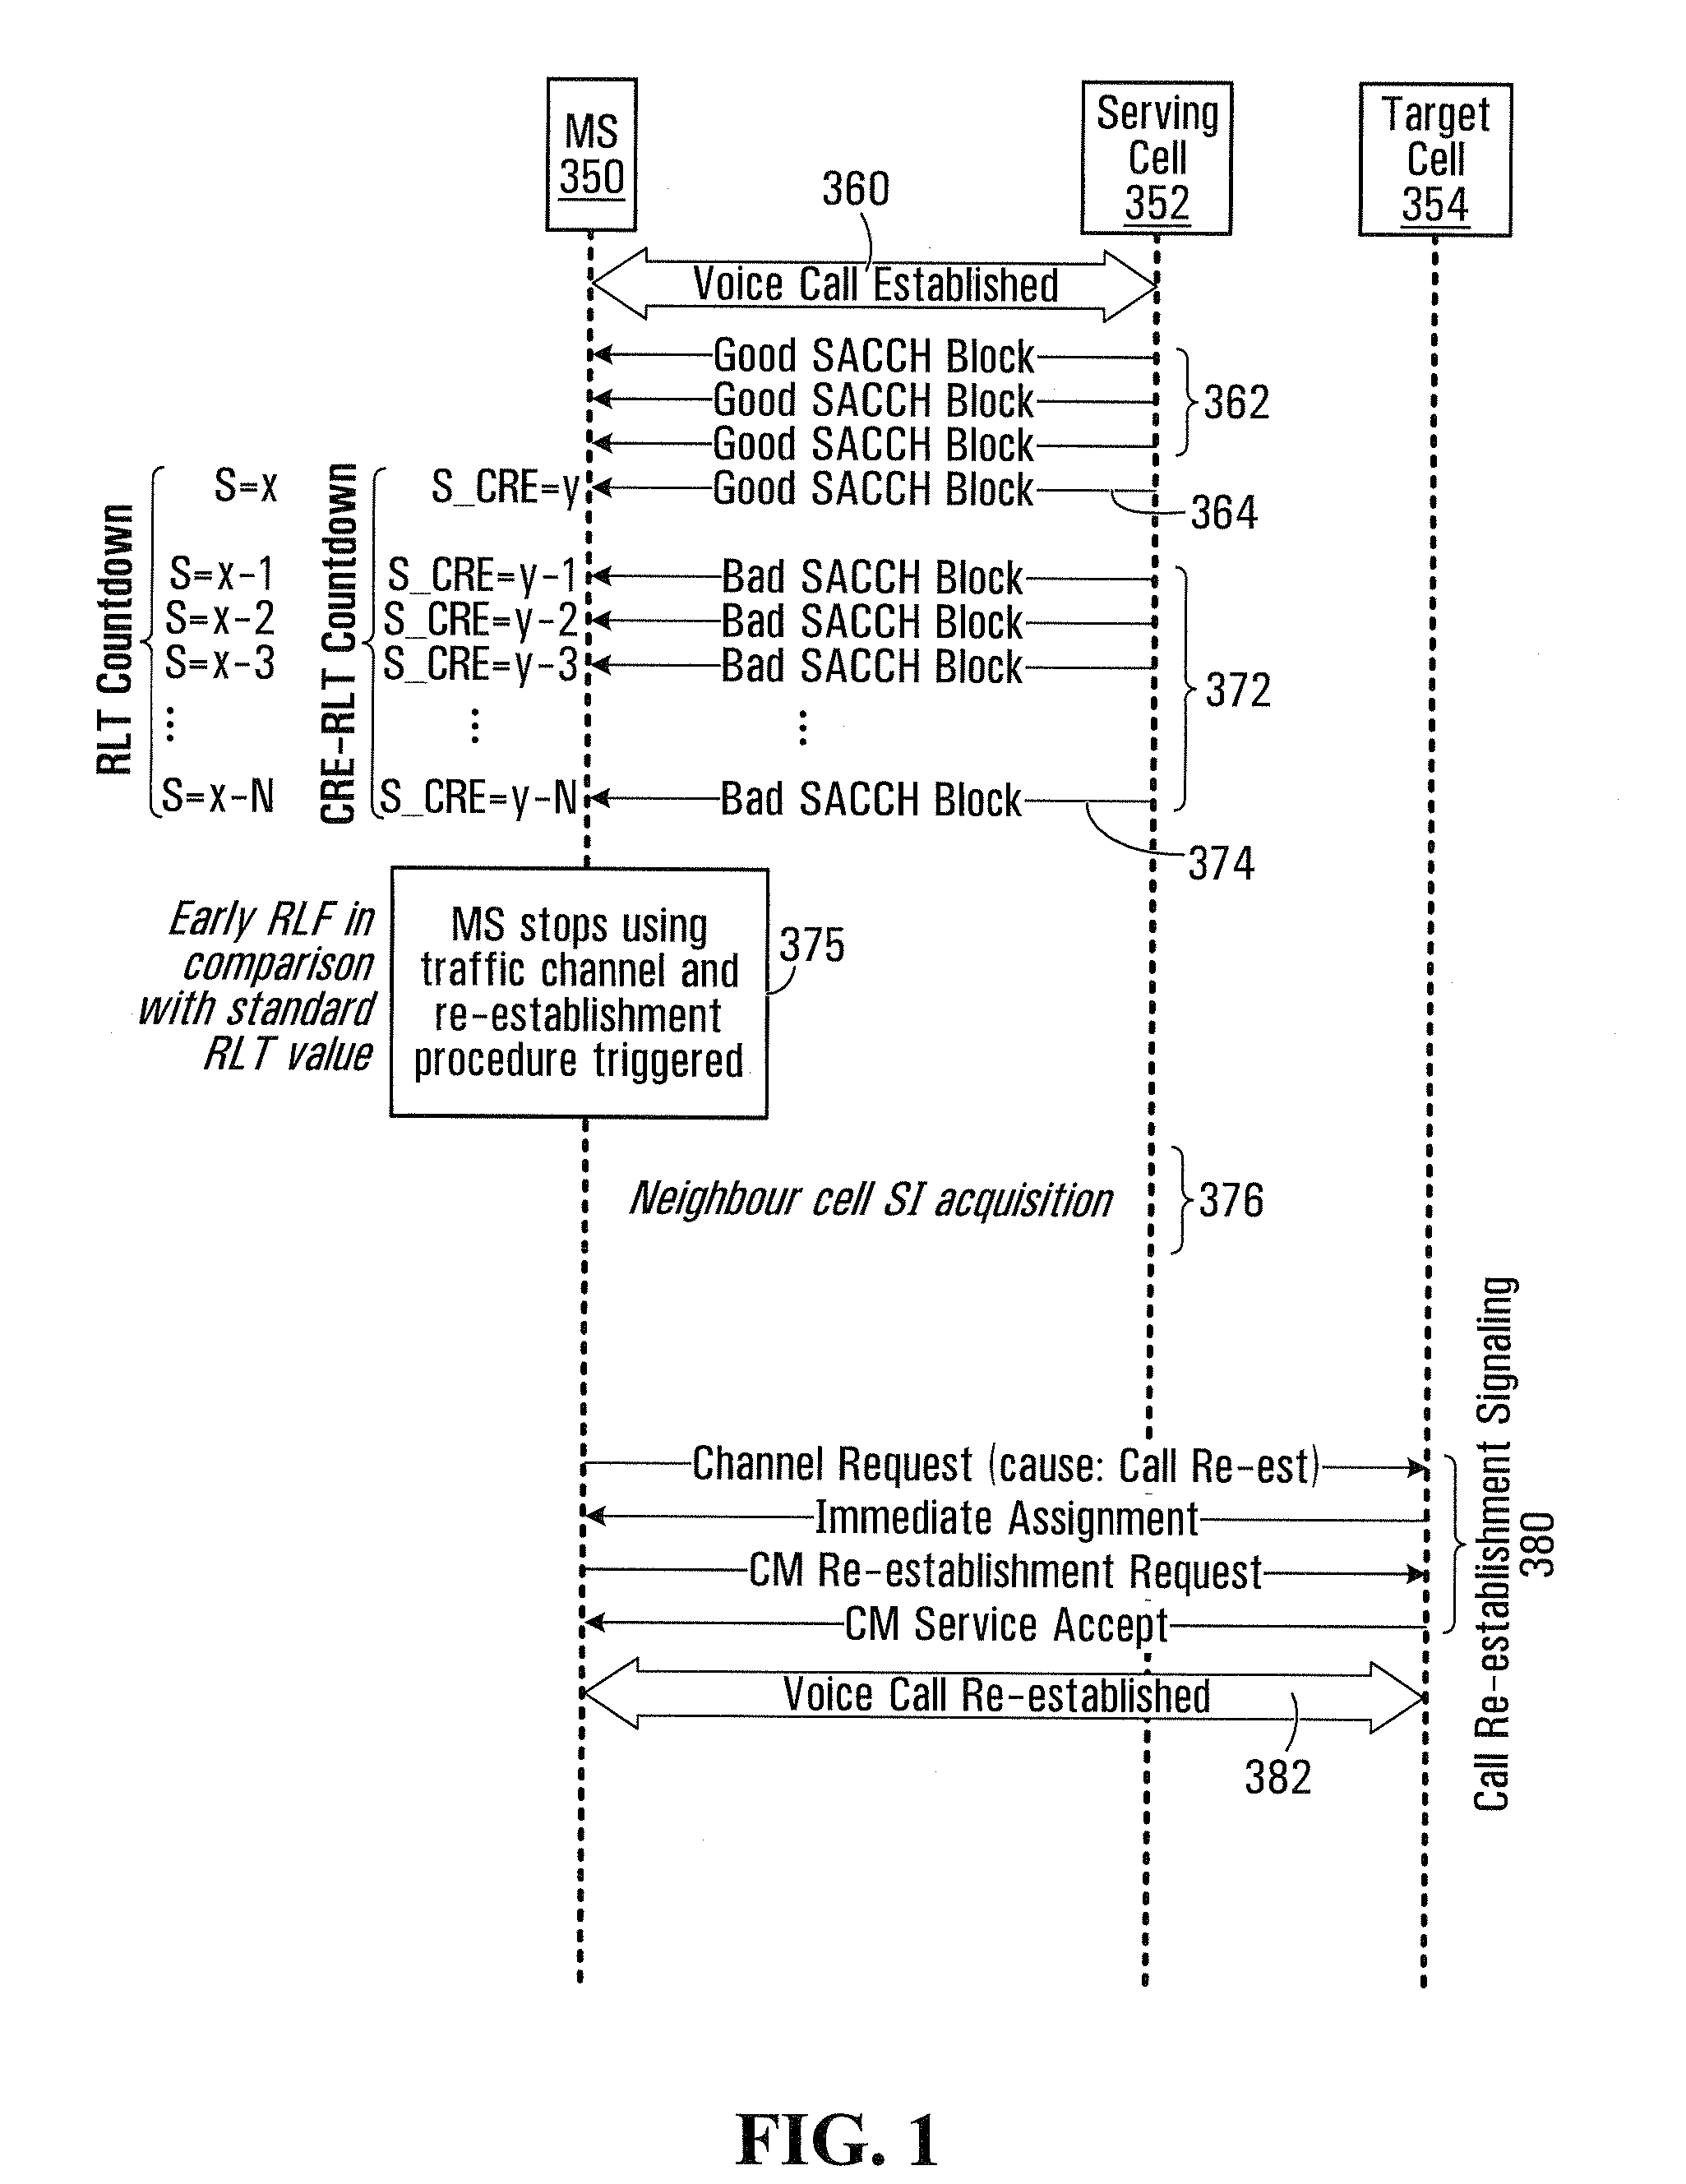 US20110053586A1 20110303 D00001?resize\=840%2C1088 valcom v 1030c wiring diagram on valcom images free download valcom paging horn wiring diagram at crackthecode.co